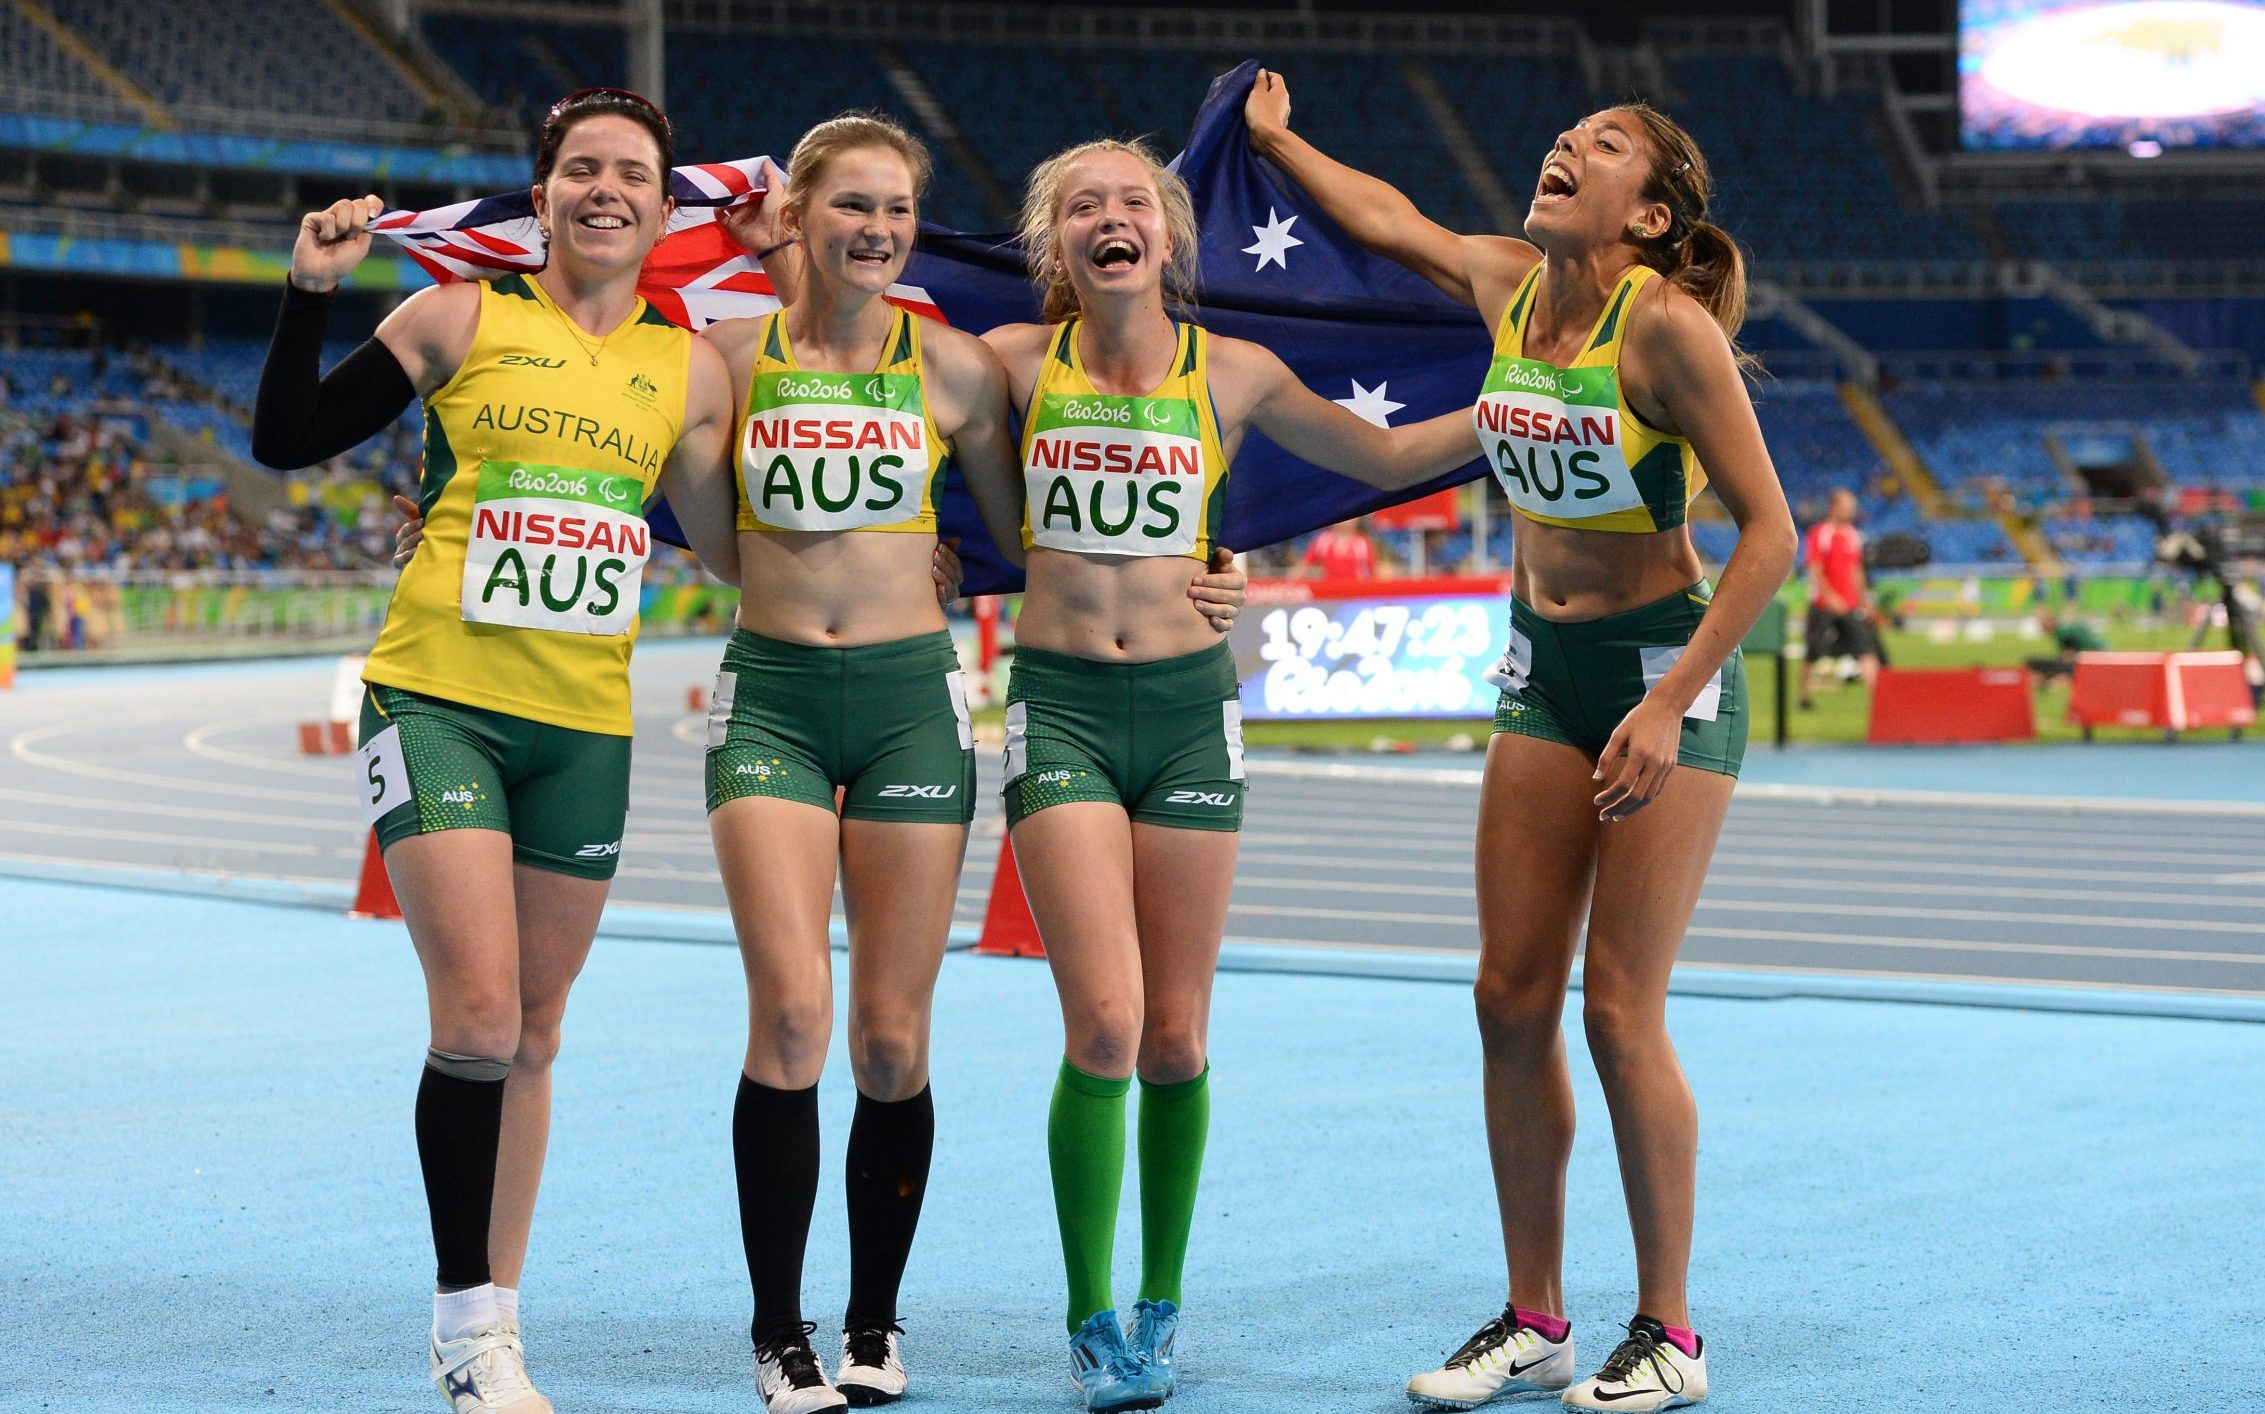 Cadbury is named the Official Chocolate Partner of ohe Australian Paralympic Team